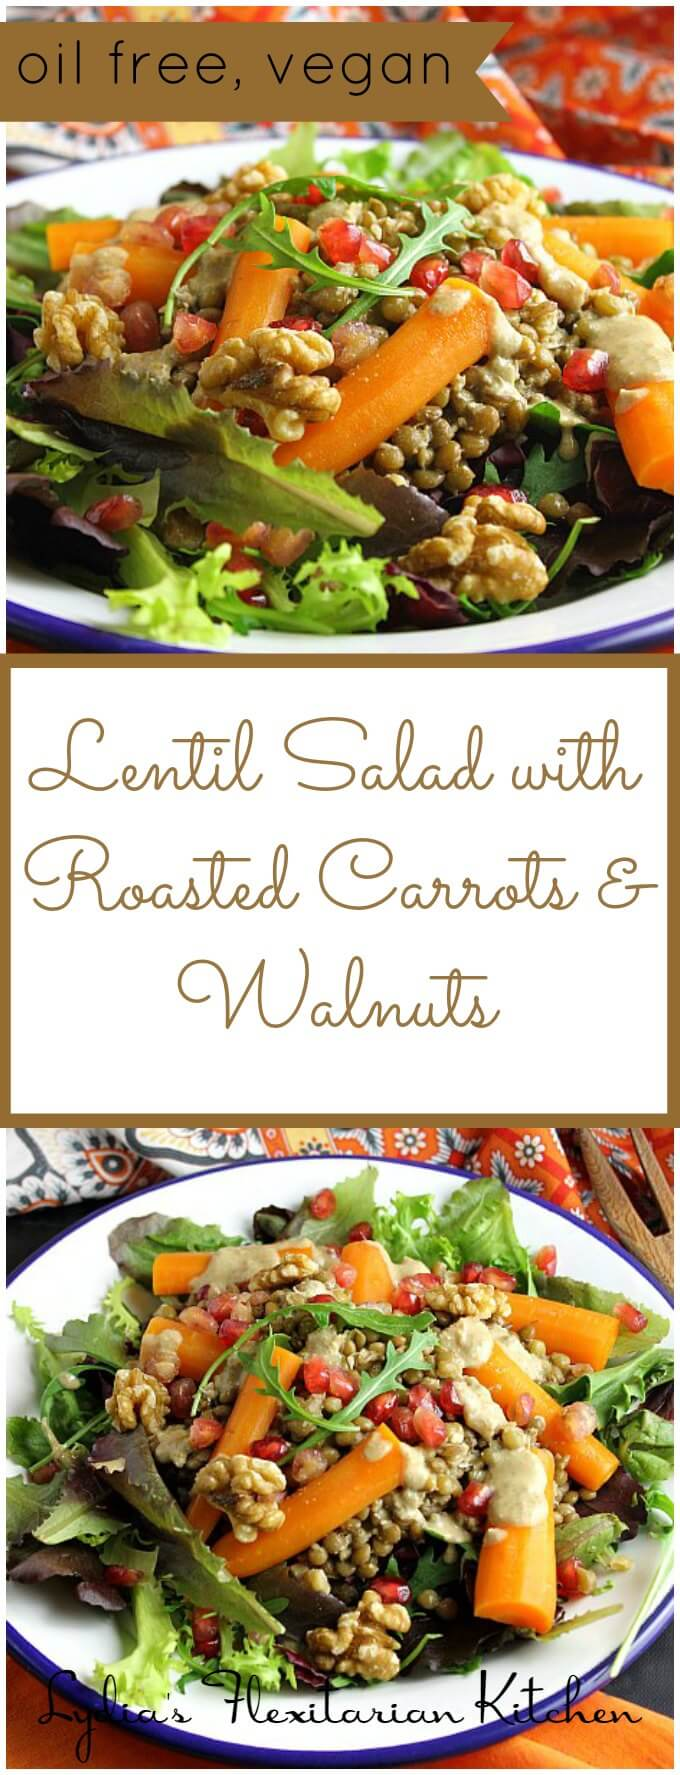 Lentil Salad with Roasted Carrots and Walnuts ~ Jamie Oliver ~ I ♥ Cooking Clubs ~ Lydia's Flexitarian Kitchen